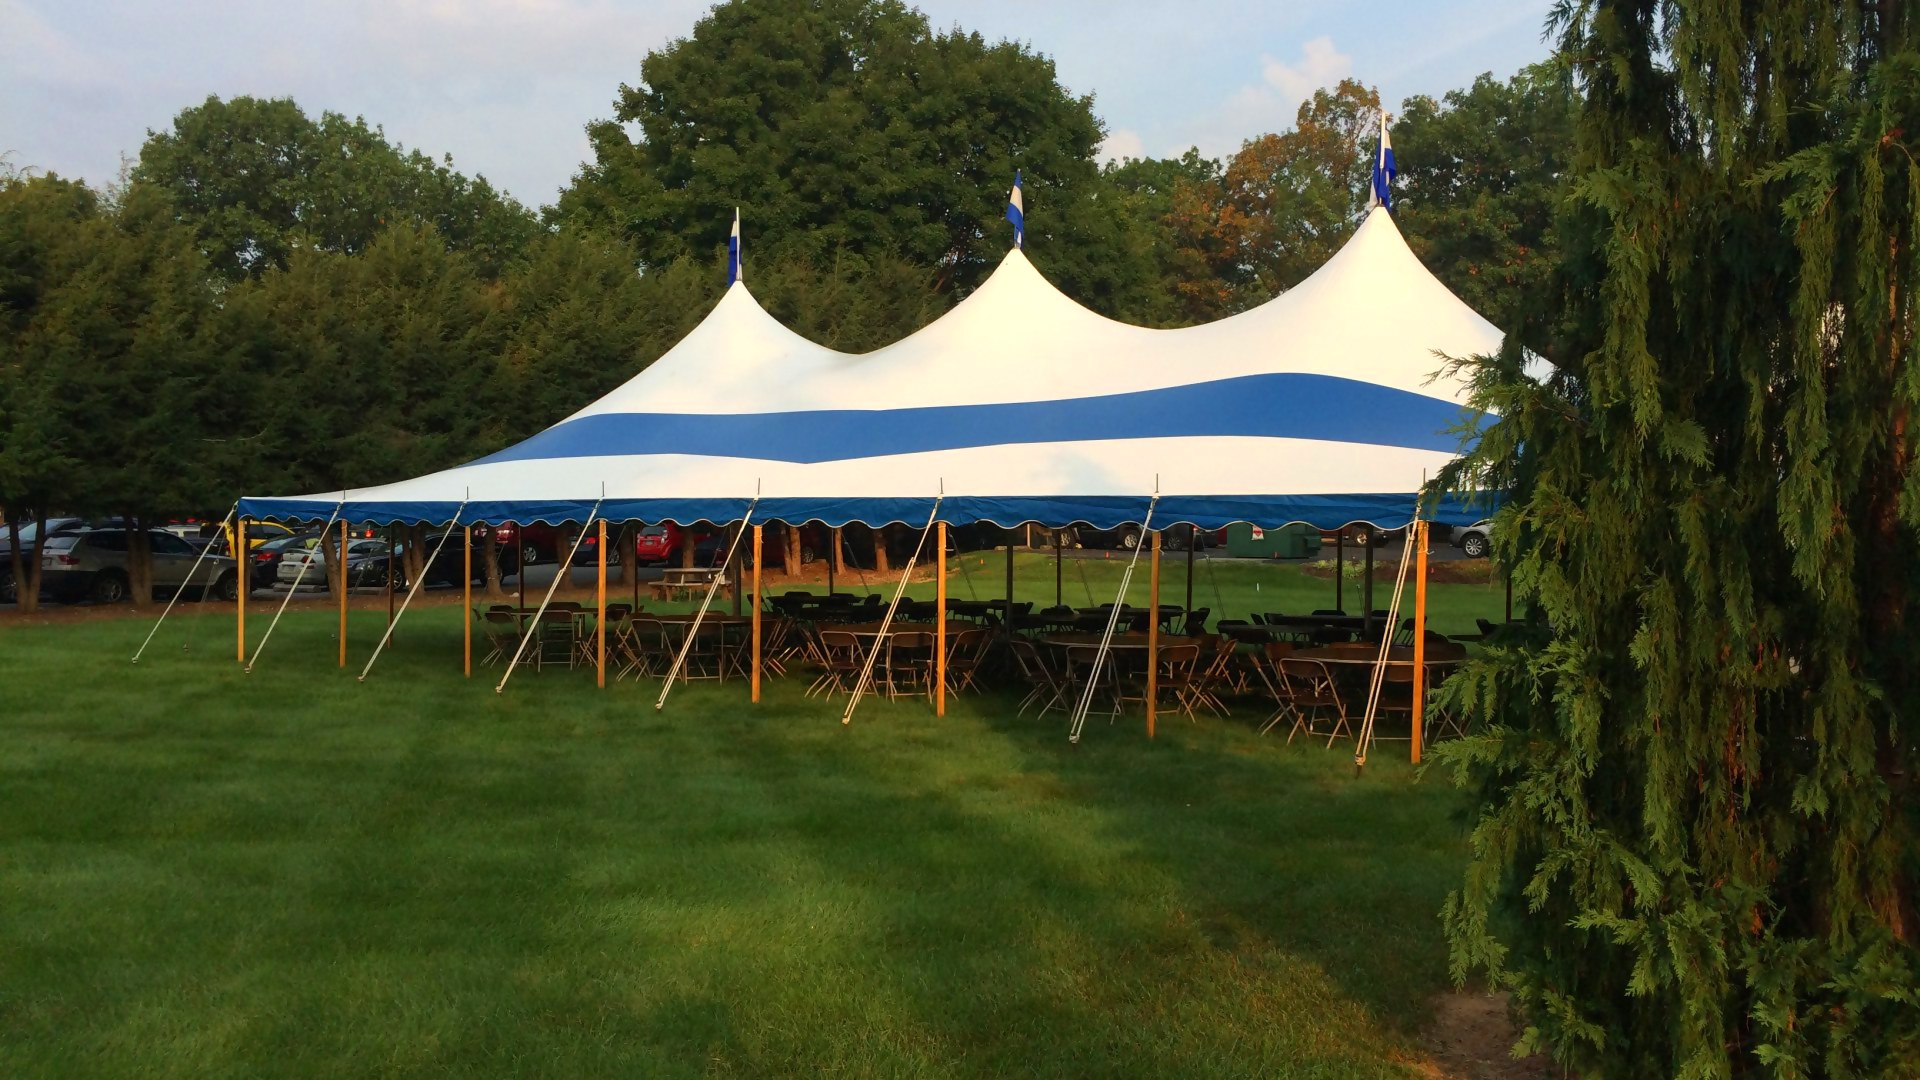 Large, blue party tent in State College, PA